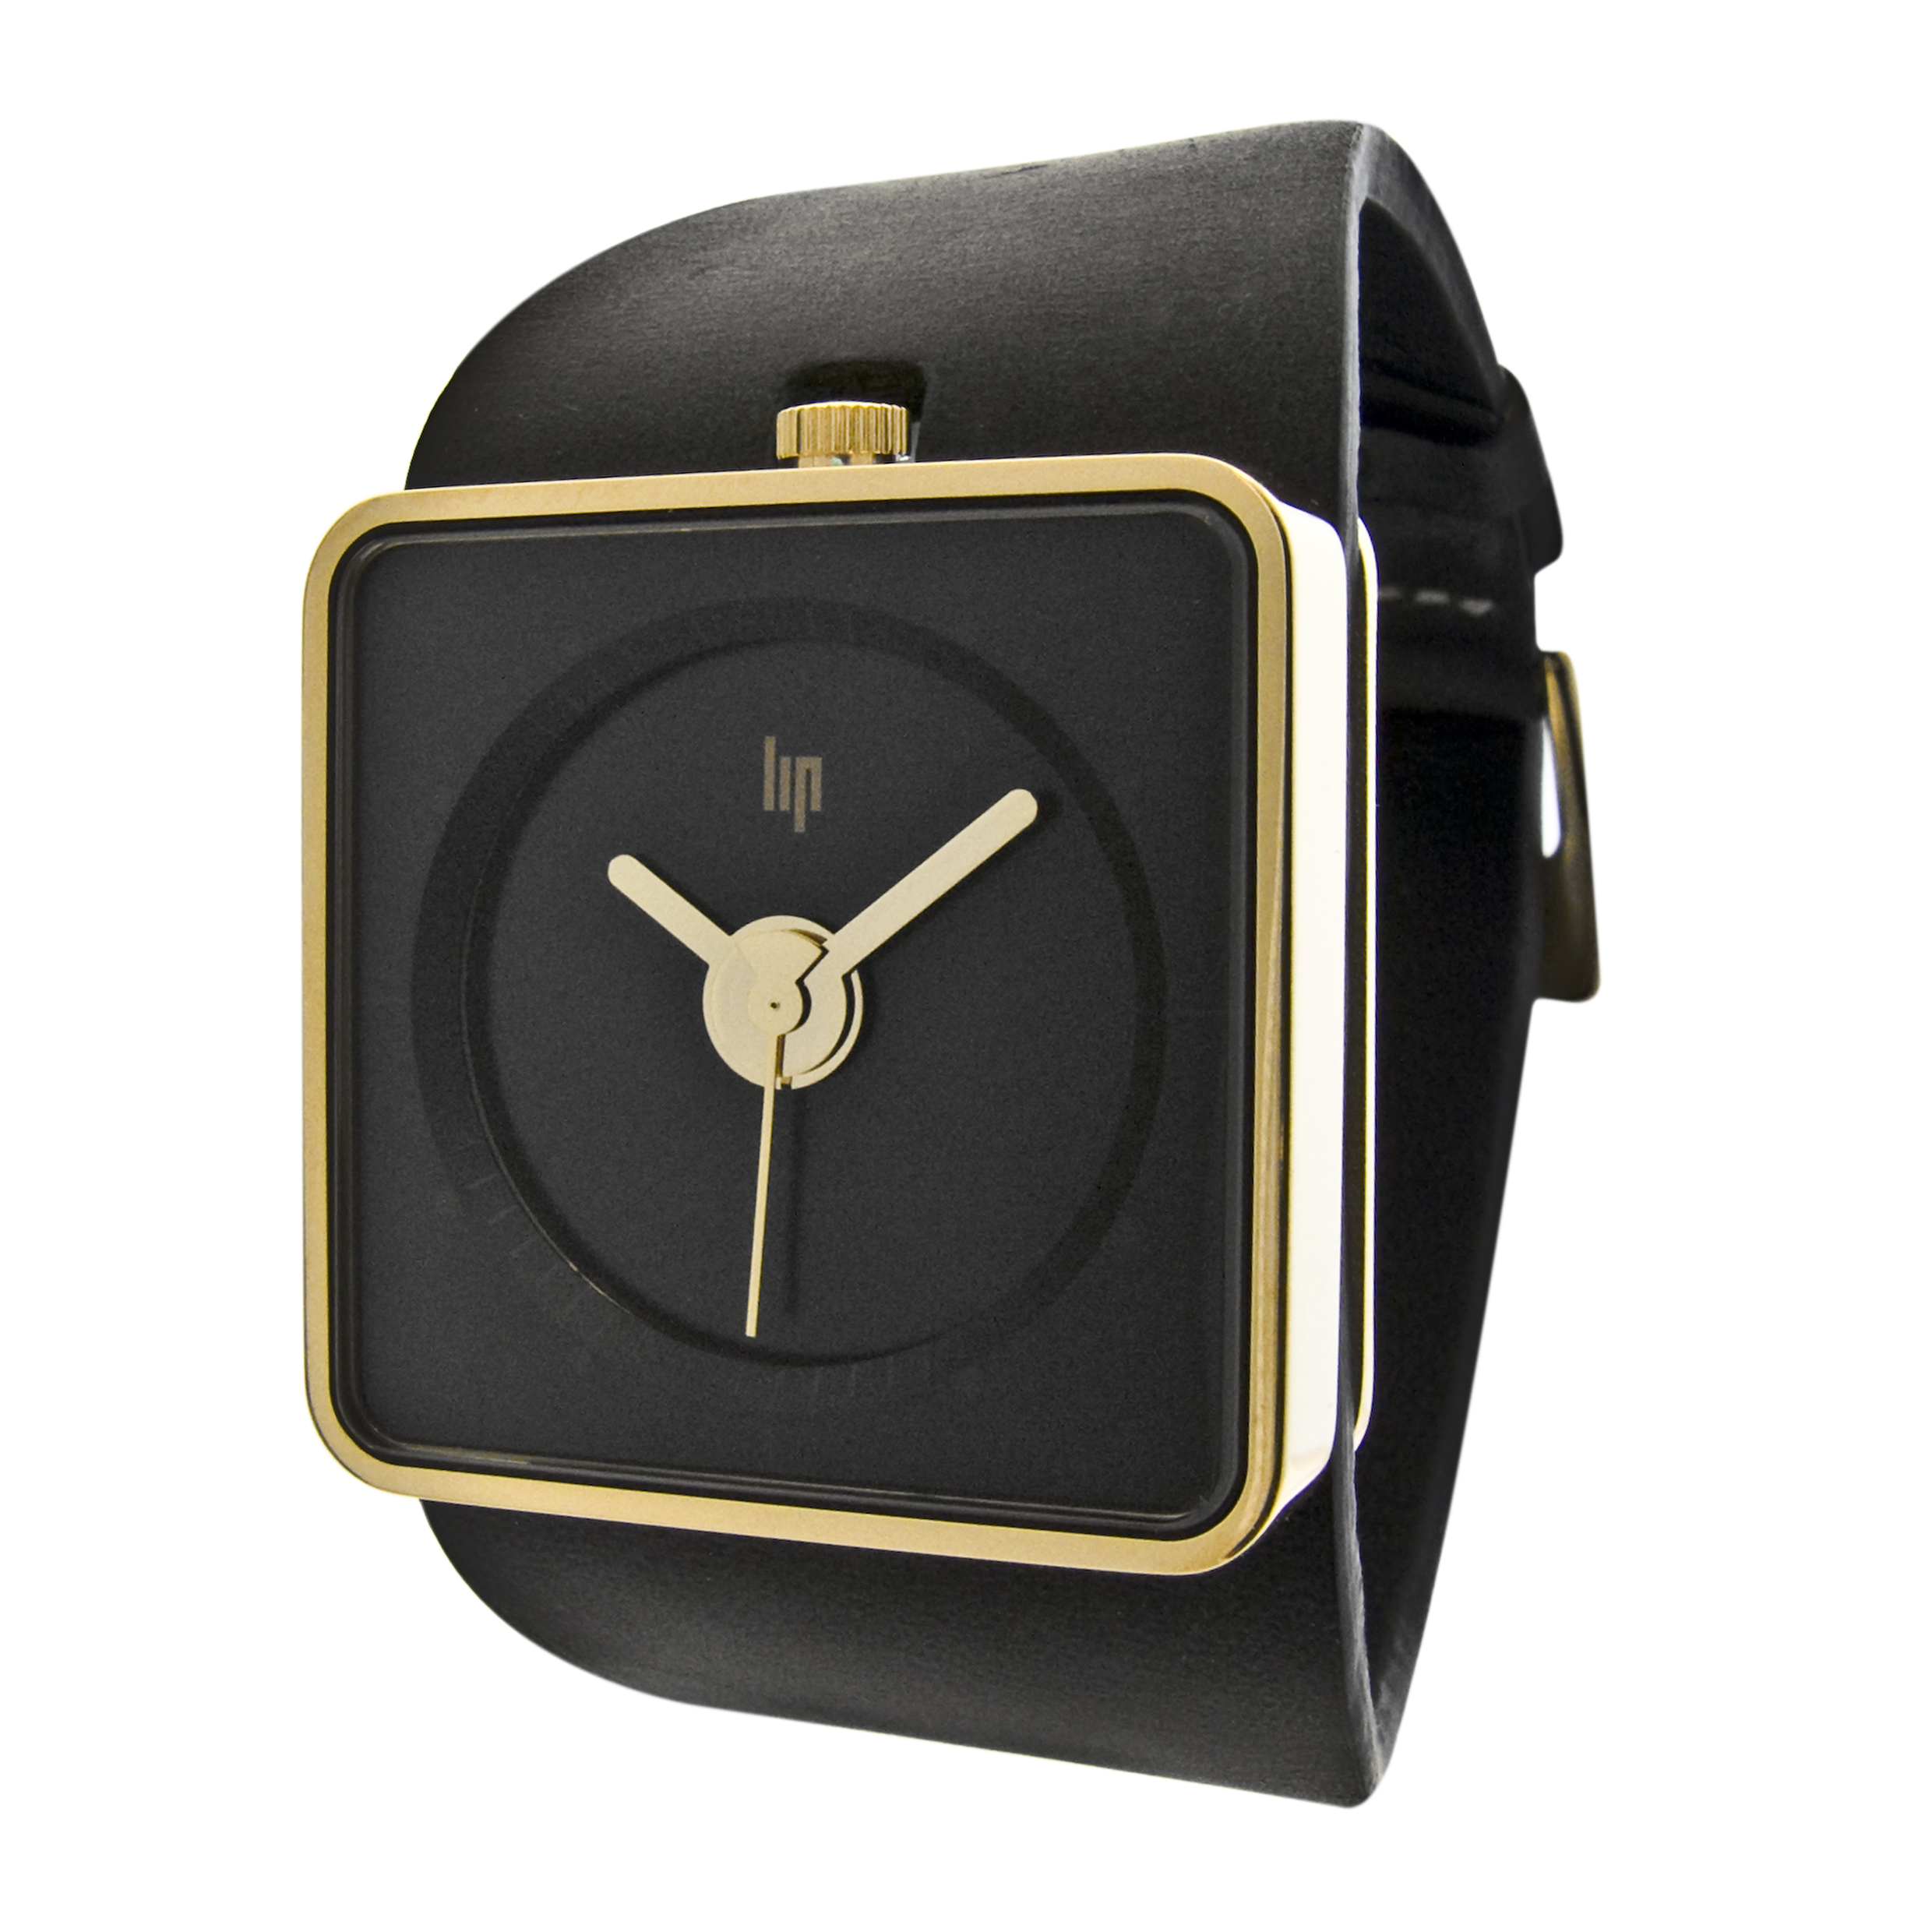 LIP Big TV Watch Gold Frame